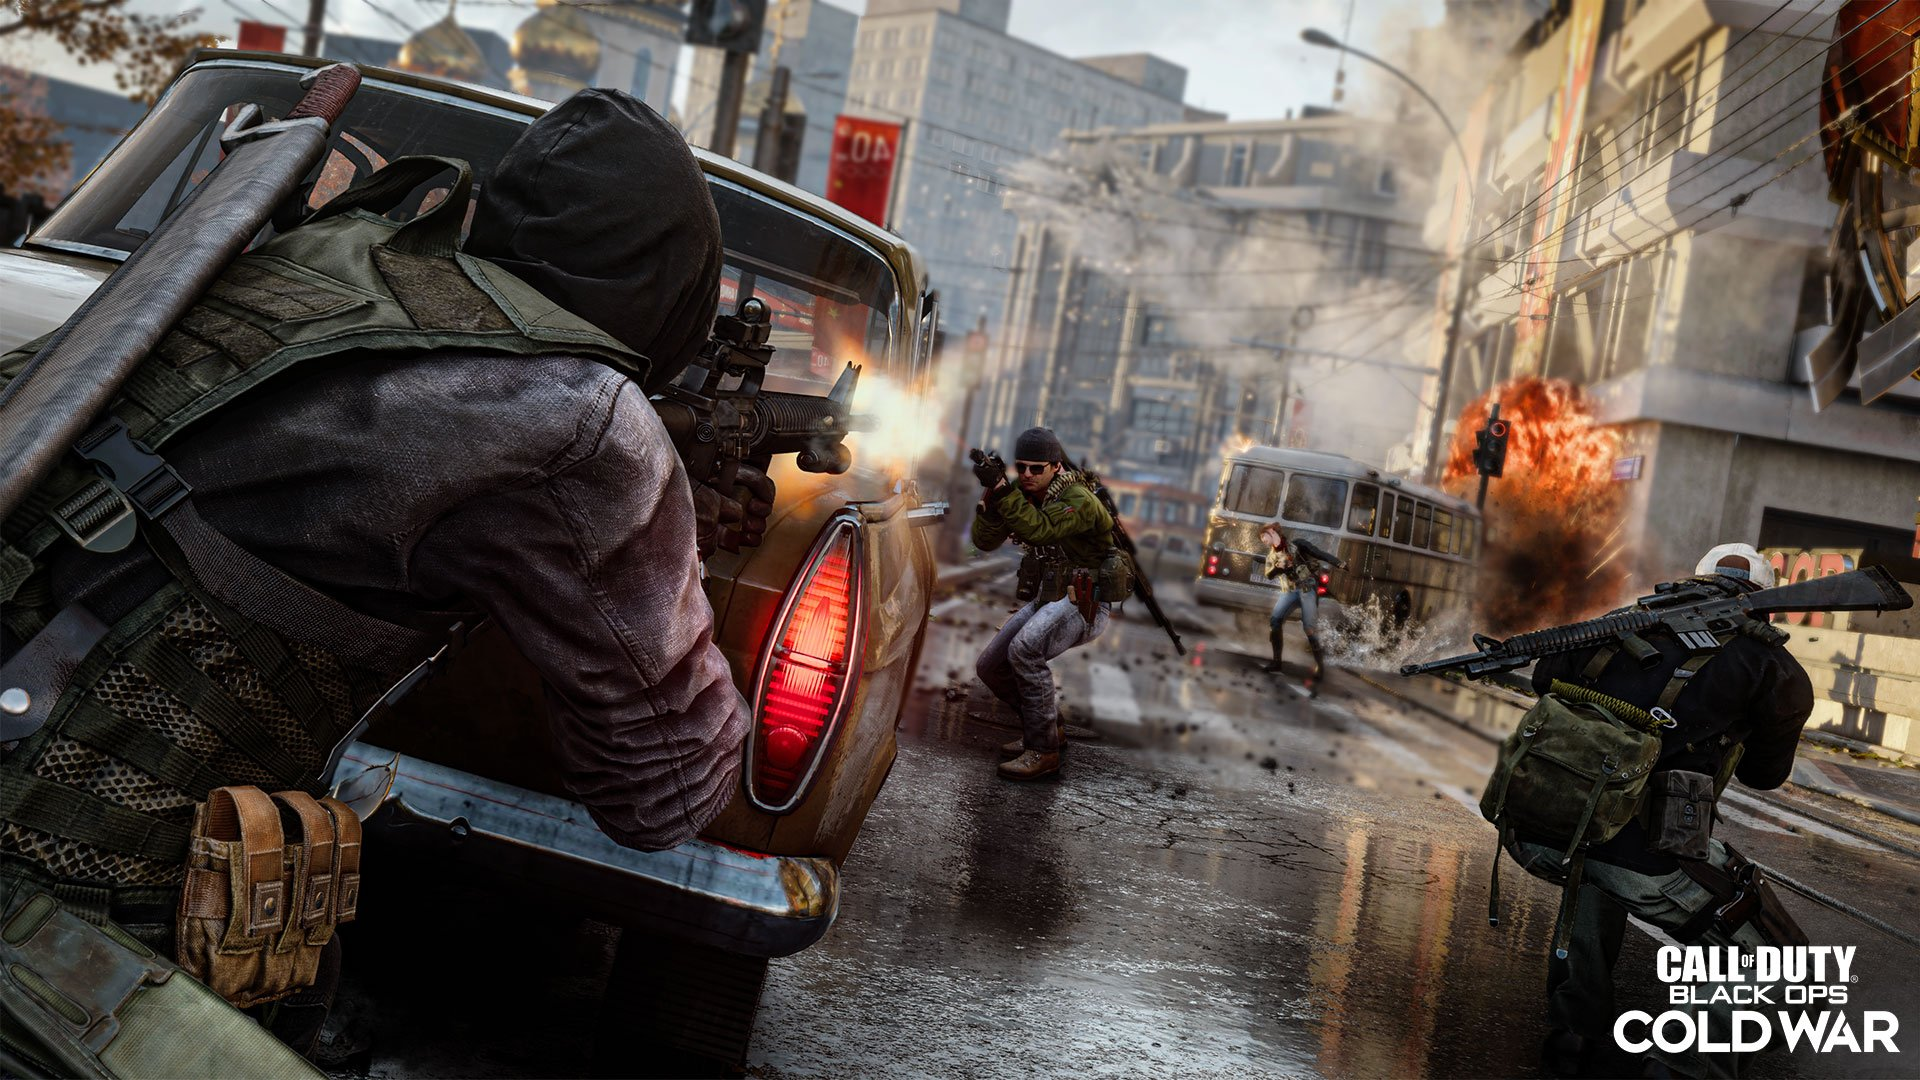 Call Of Duty Community Frustrated As Litany Of PlayStation Benefits Are Made Public